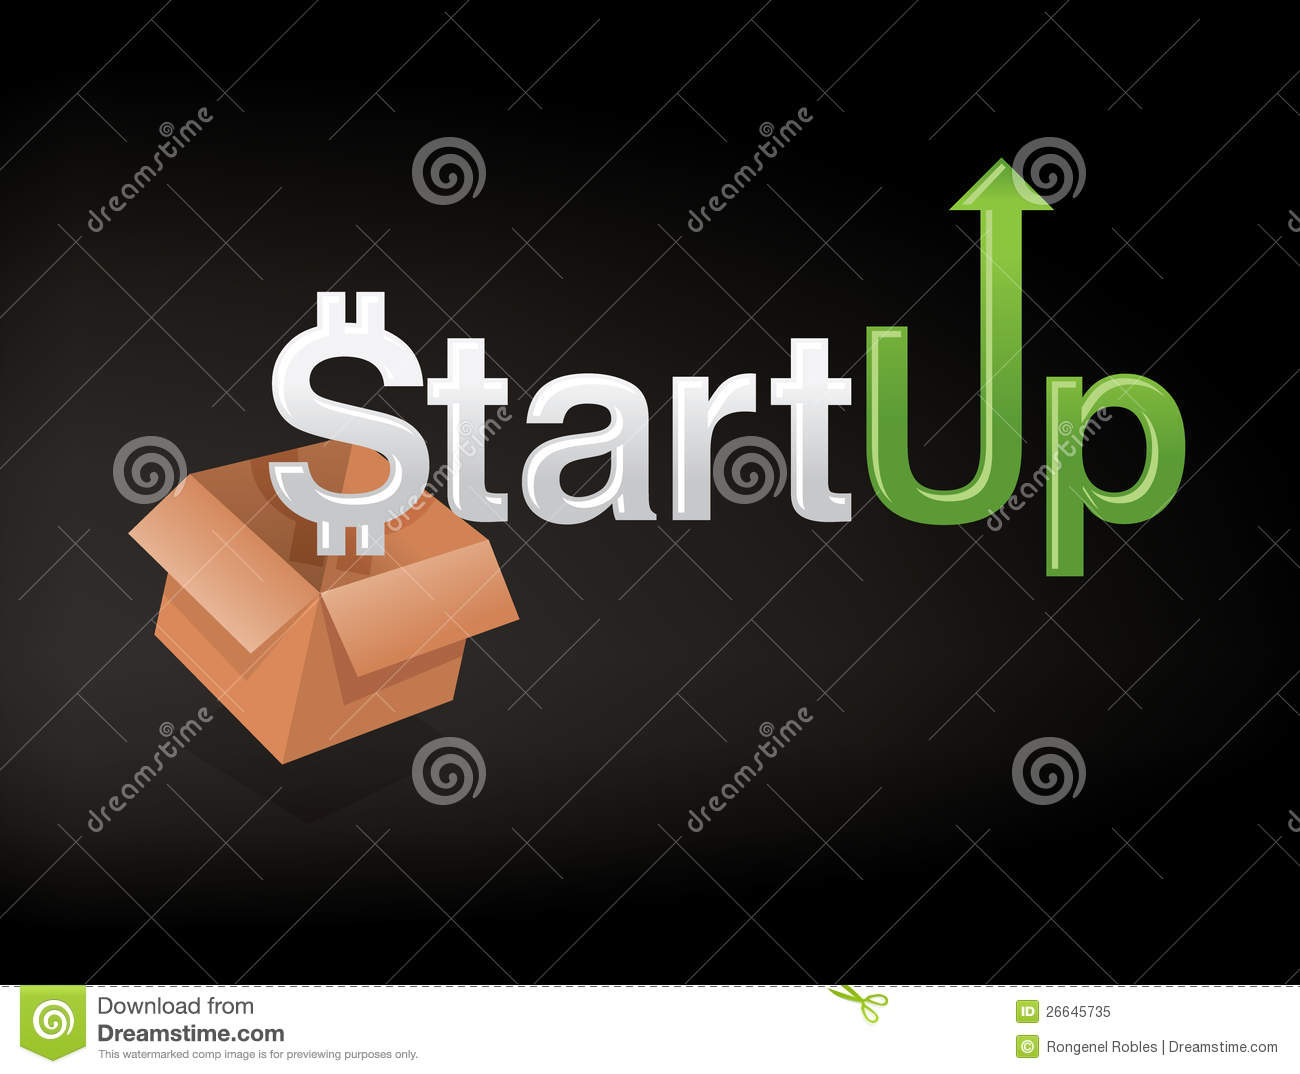 Graphic and unique custom font that represents start up business